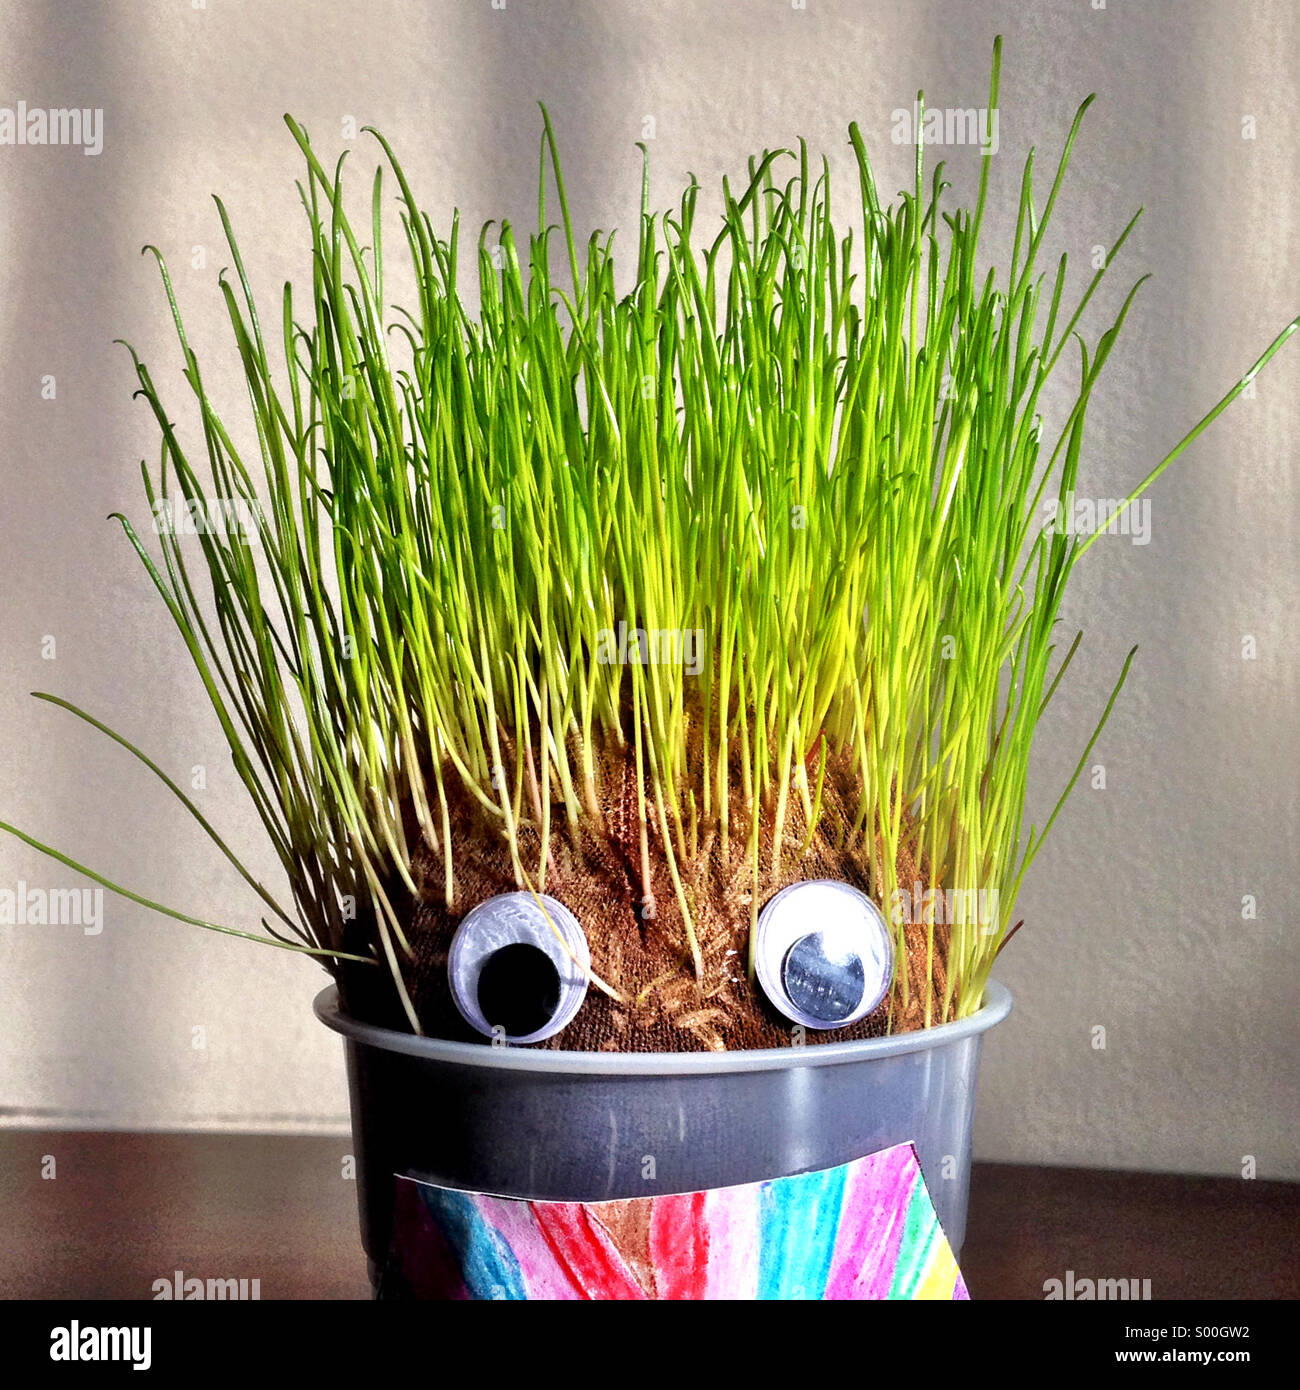 Kid's craft growing grass. - Stock Image